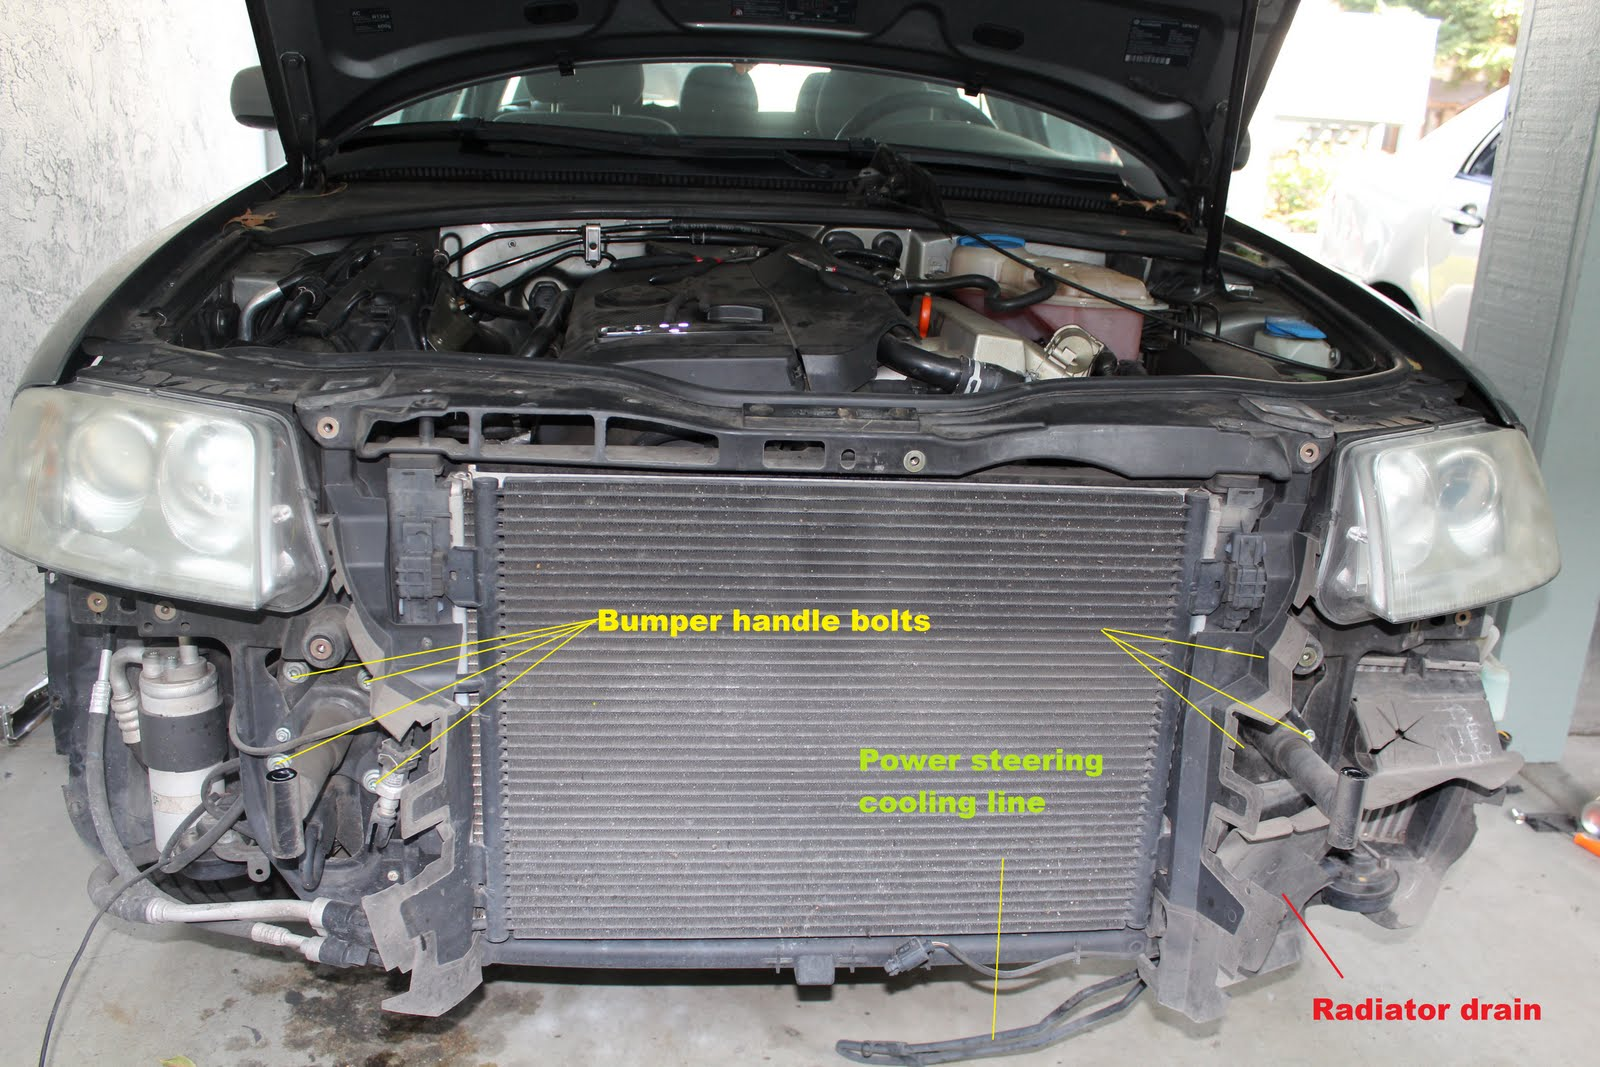 Vaccum Diagram Audi A4 18t Passat18t Seshu 2001 1 8t Engine Be Careful Dont Screw Thisif U Do Will Have Problems Opening The Hood Later Removed Top Bumper Boltstwo That Hold Grill With Vw Sign